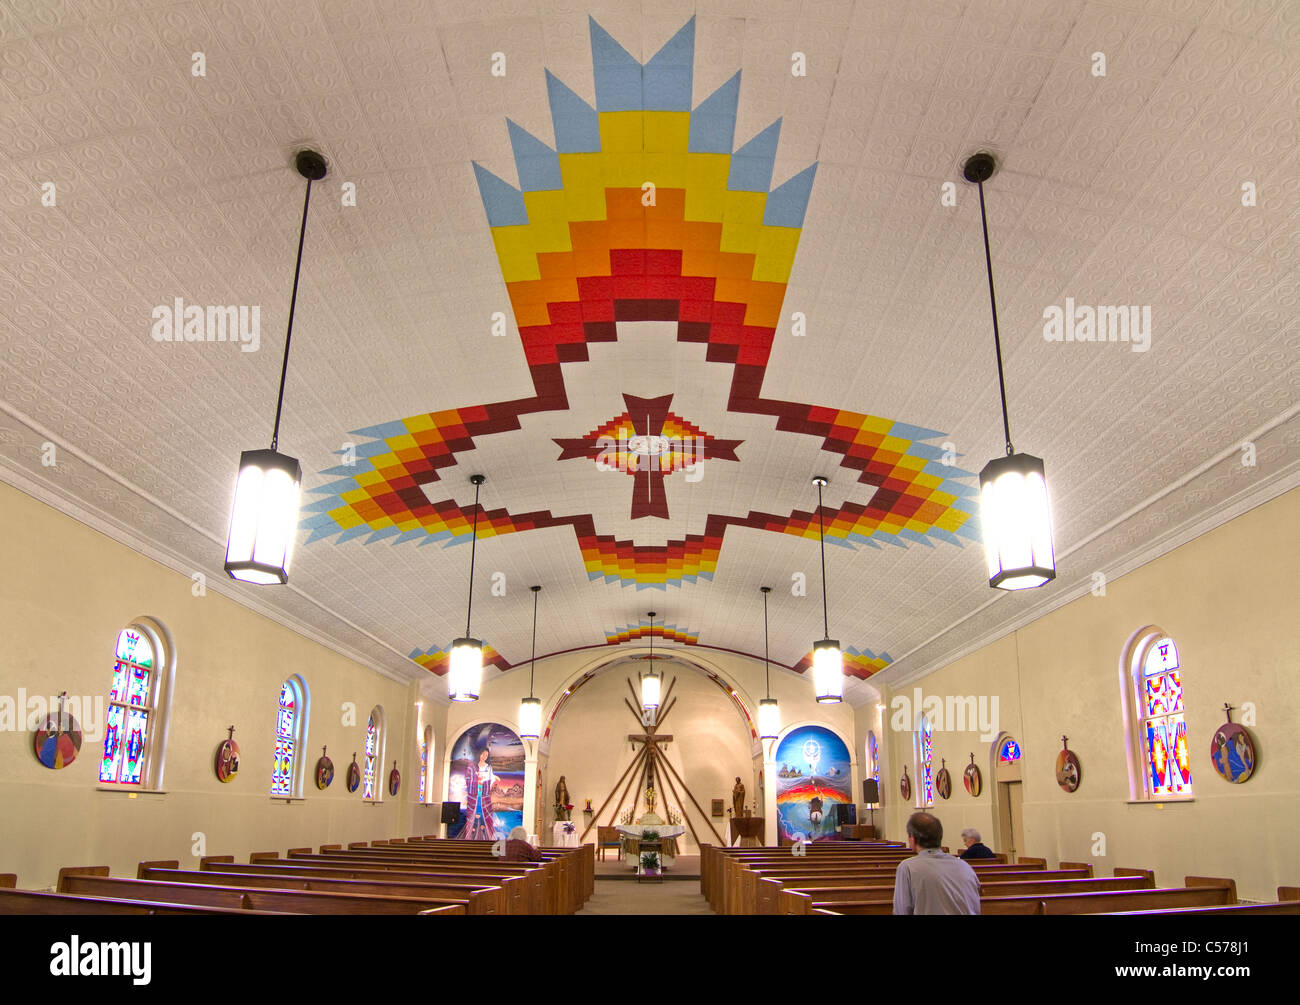 St Stephen's catholic church in Ethete, on the Wind River Indian Reservation, home to Arapaho and Eastern Shoshone - Stock Image